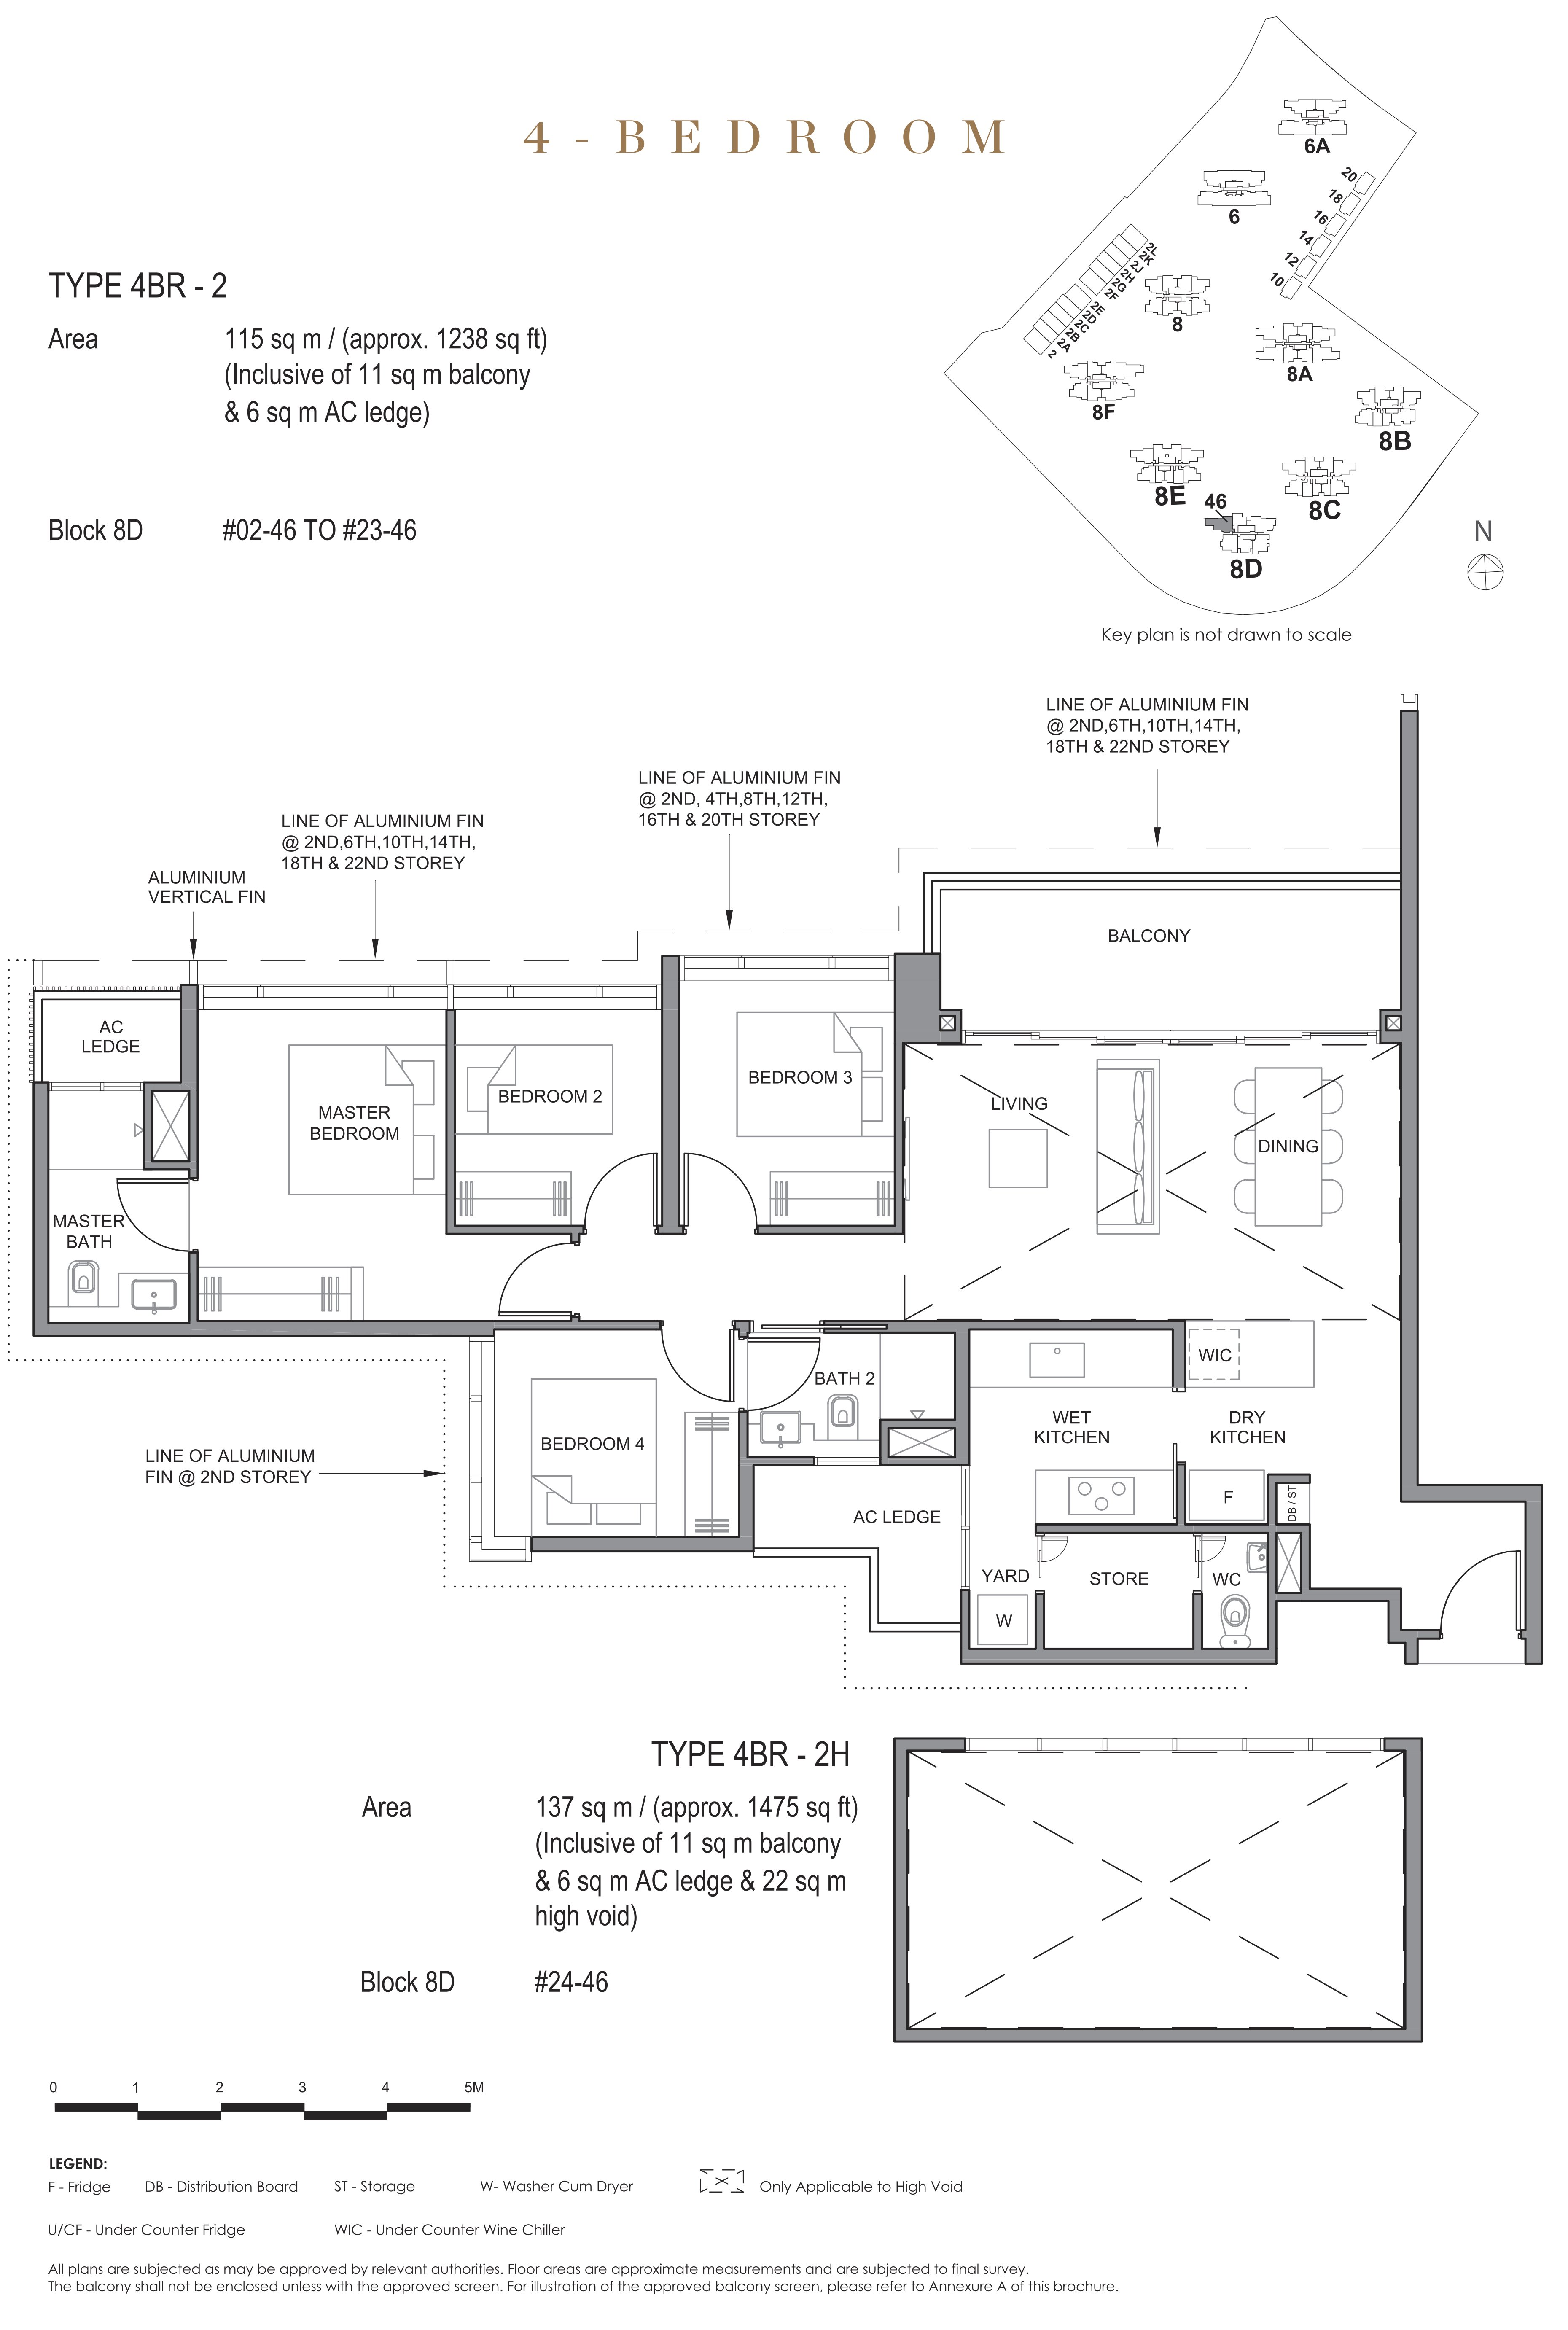 Parc Clematis 锦泰门第 contemporary 4 bedroom 4卧房 4 BR-2